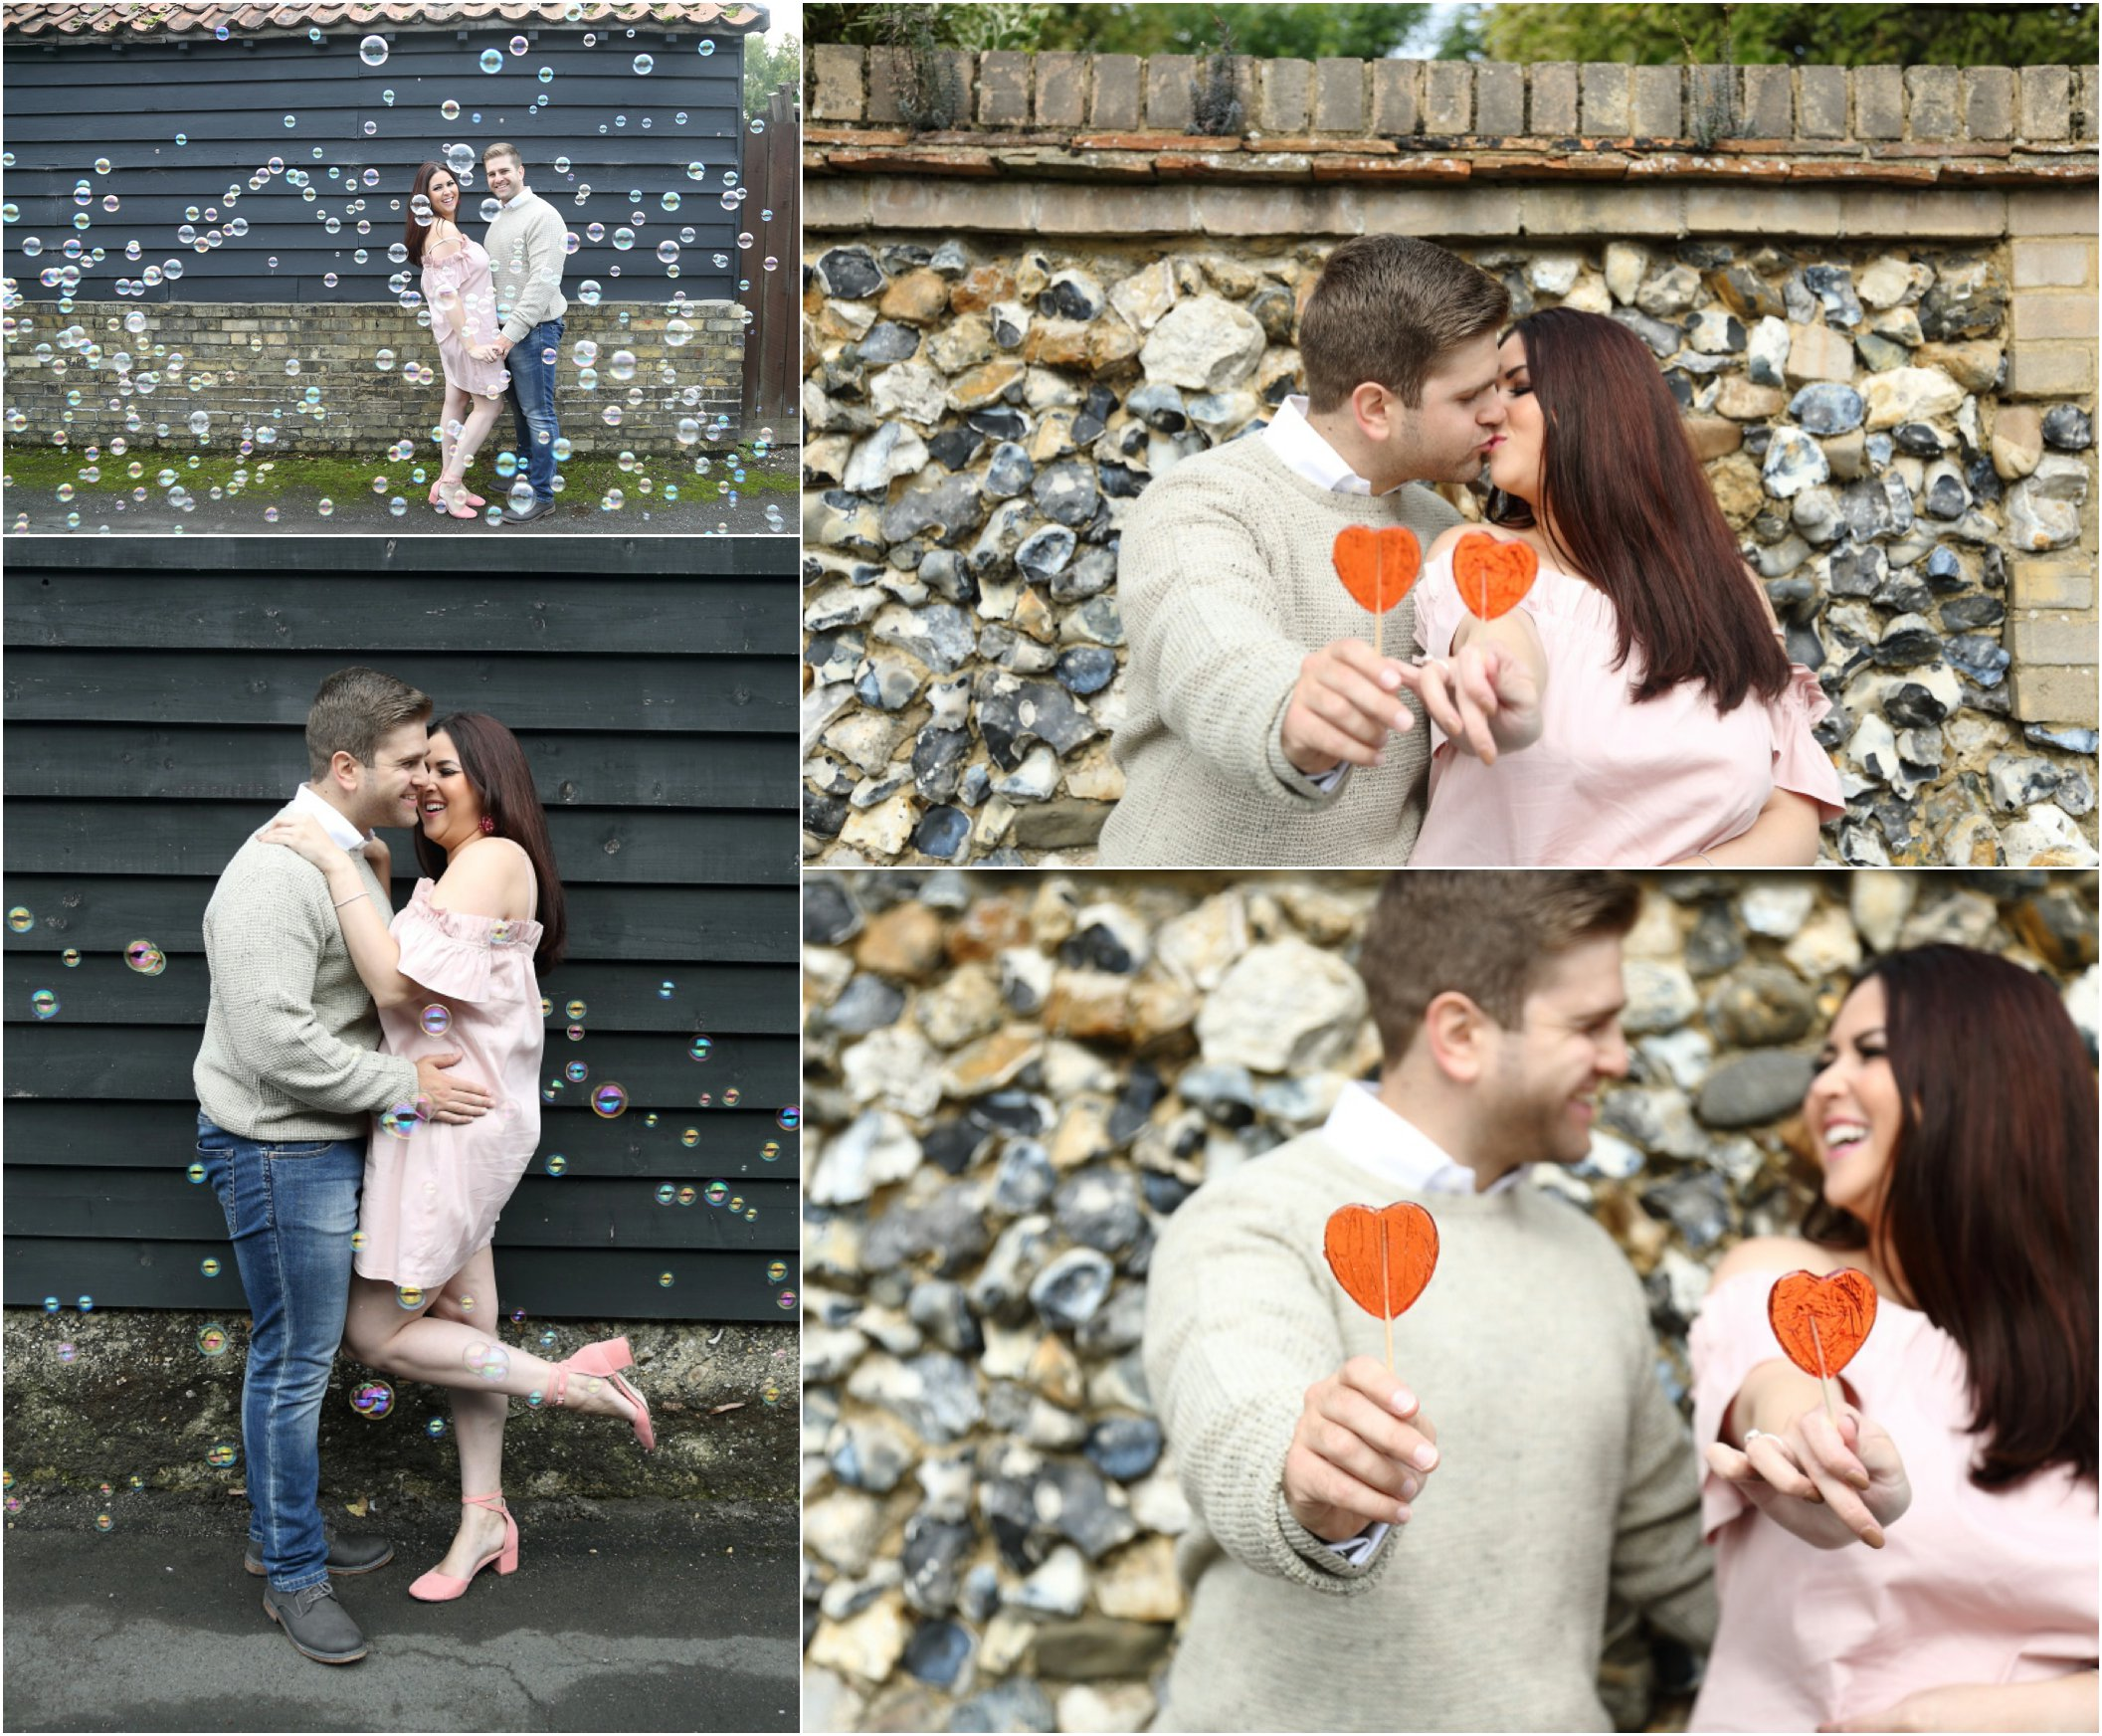 bubble machine and love heart lollys at romantic couples engage,ent photo shoot Cambridge